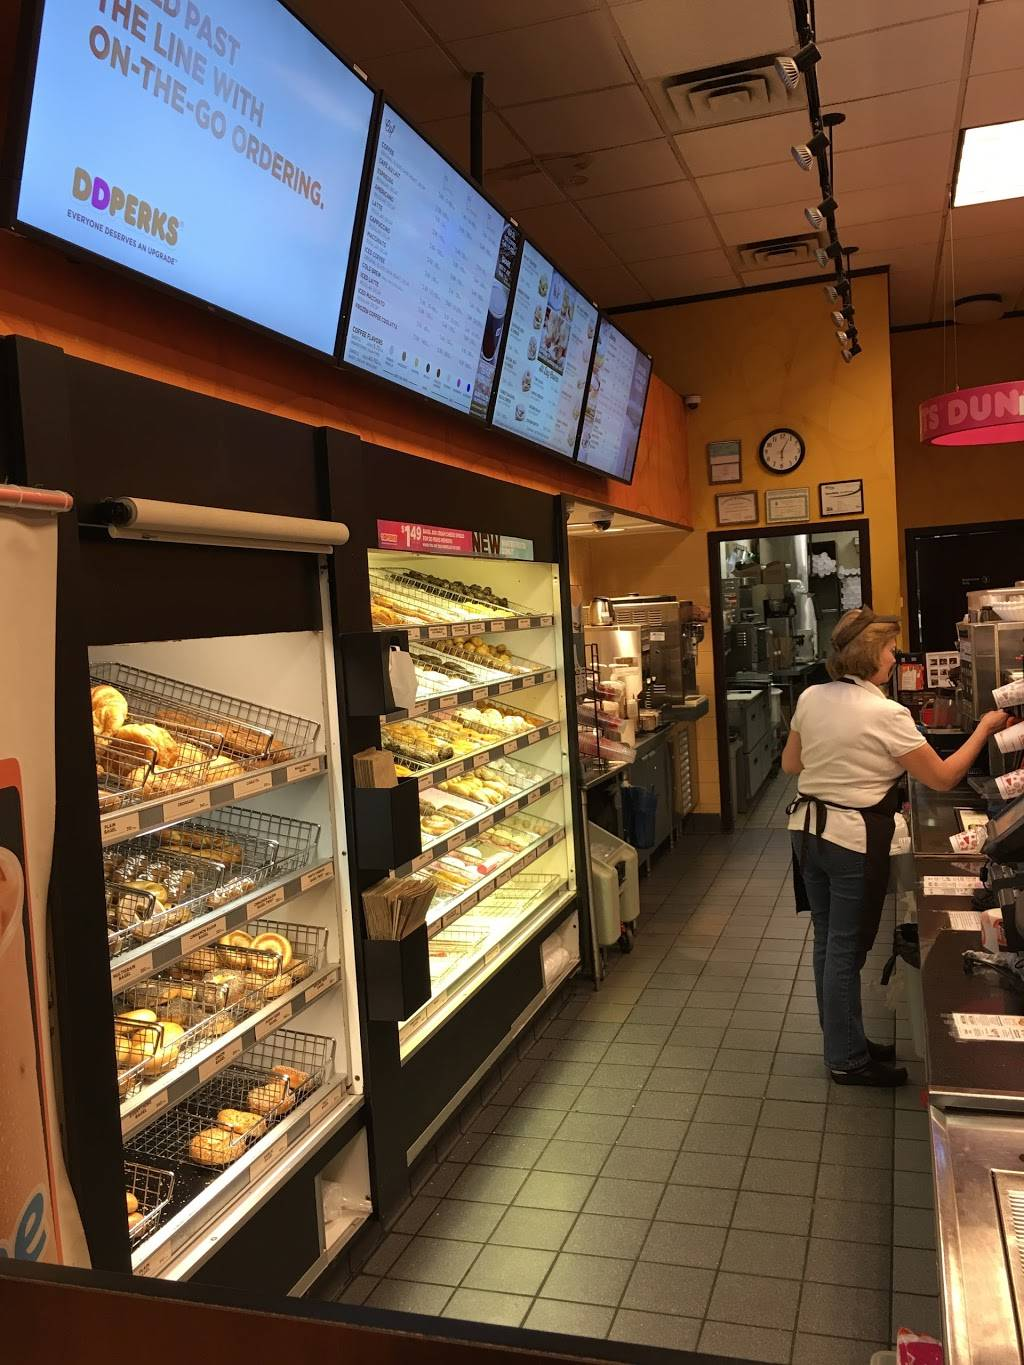 Dunkin Donuts   cafe   1044 Hope St, Stamford, CT 06907, USA   2033240299 OR +1 203-324-0299